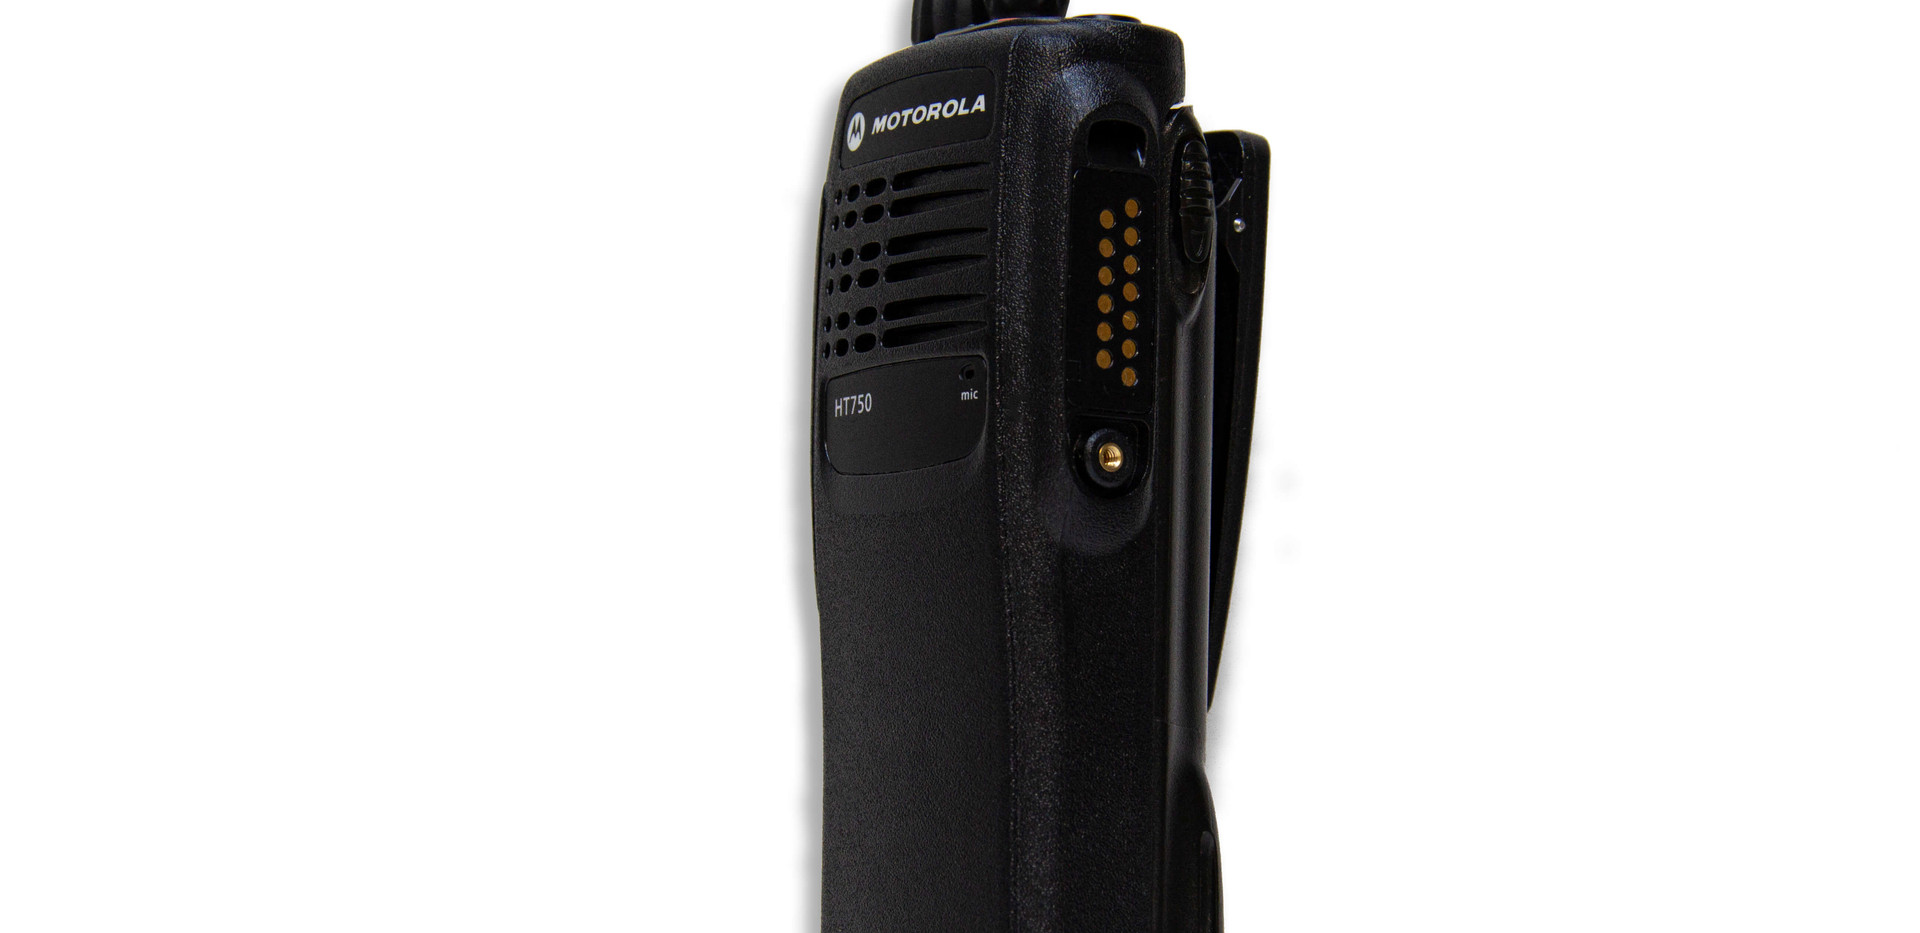 Side view Stage Ops Motorola HT750 two-way radio